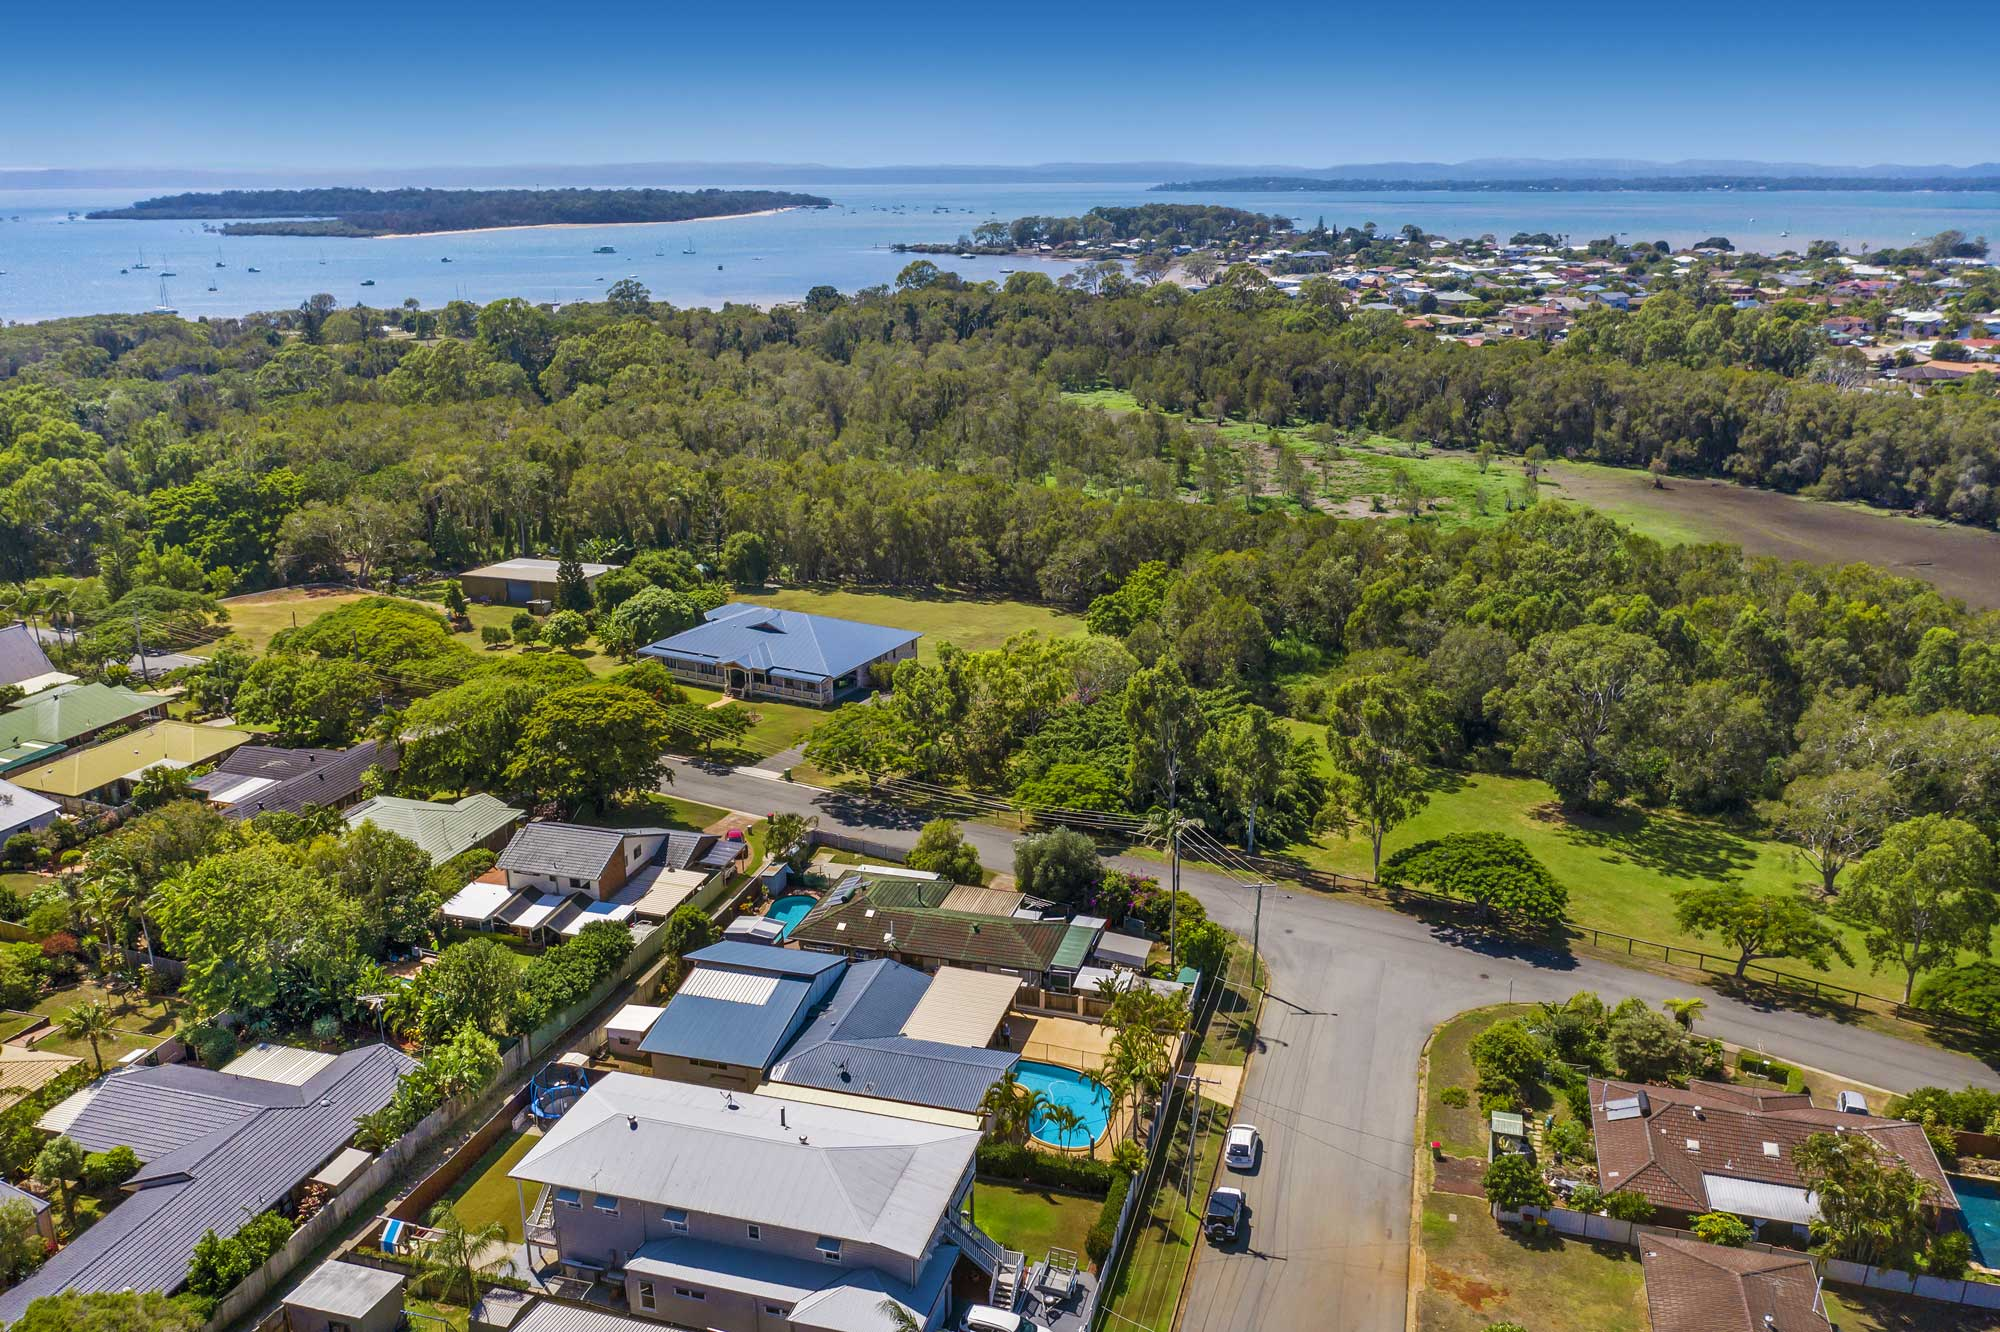 Drone Photography Brisbane - home for sale at Redland Bay